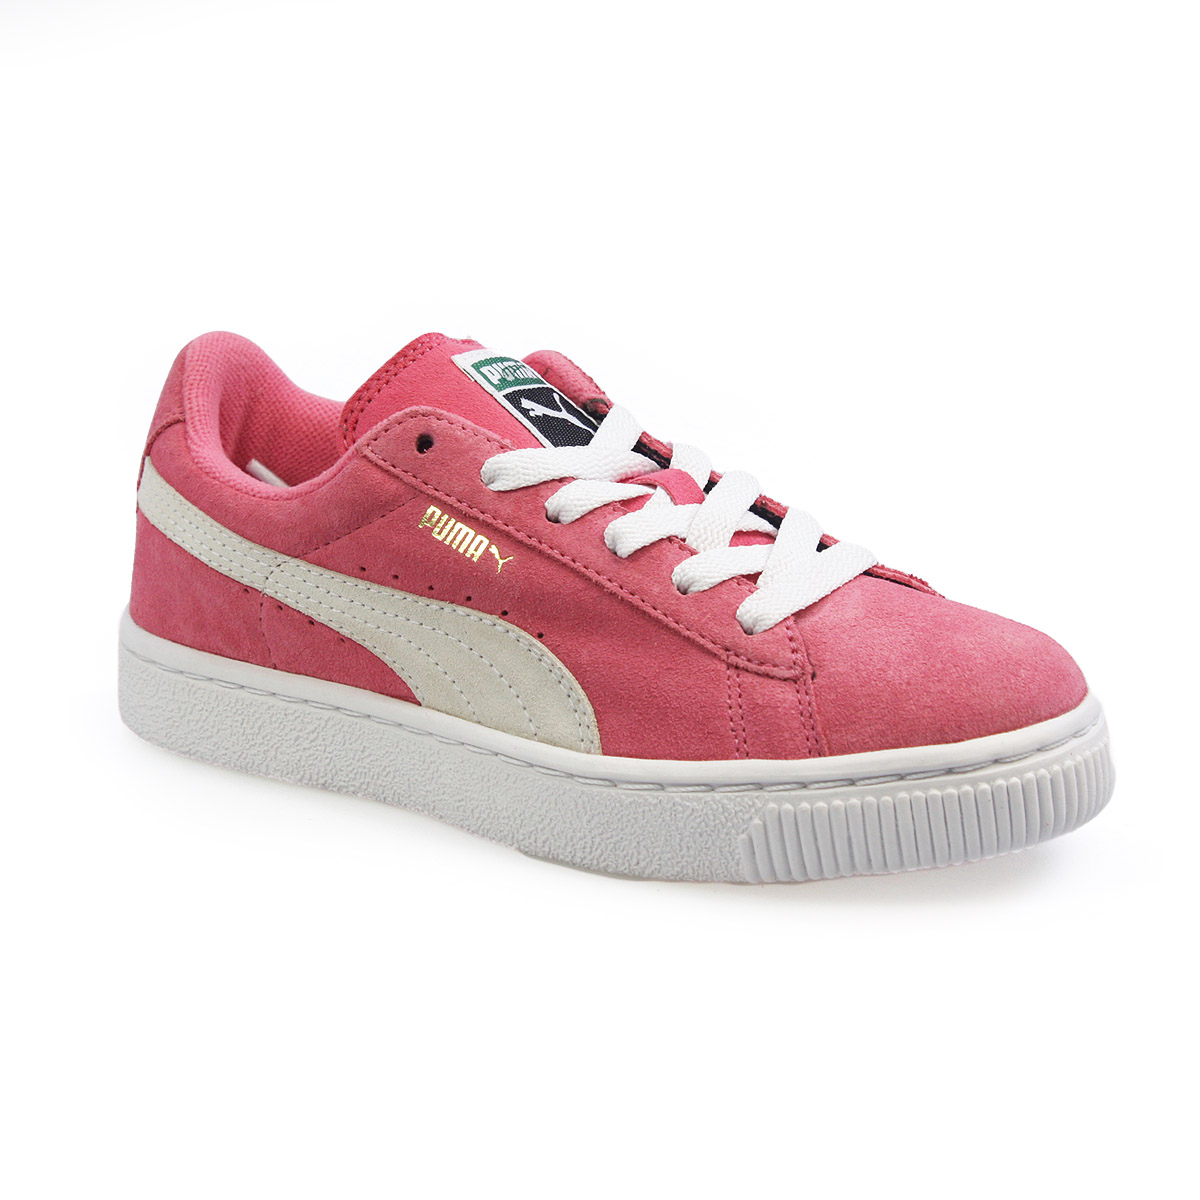 puma classic hot pink white junior suede trainers. Black Bedroom Furniture Sets. Home Design Ideas